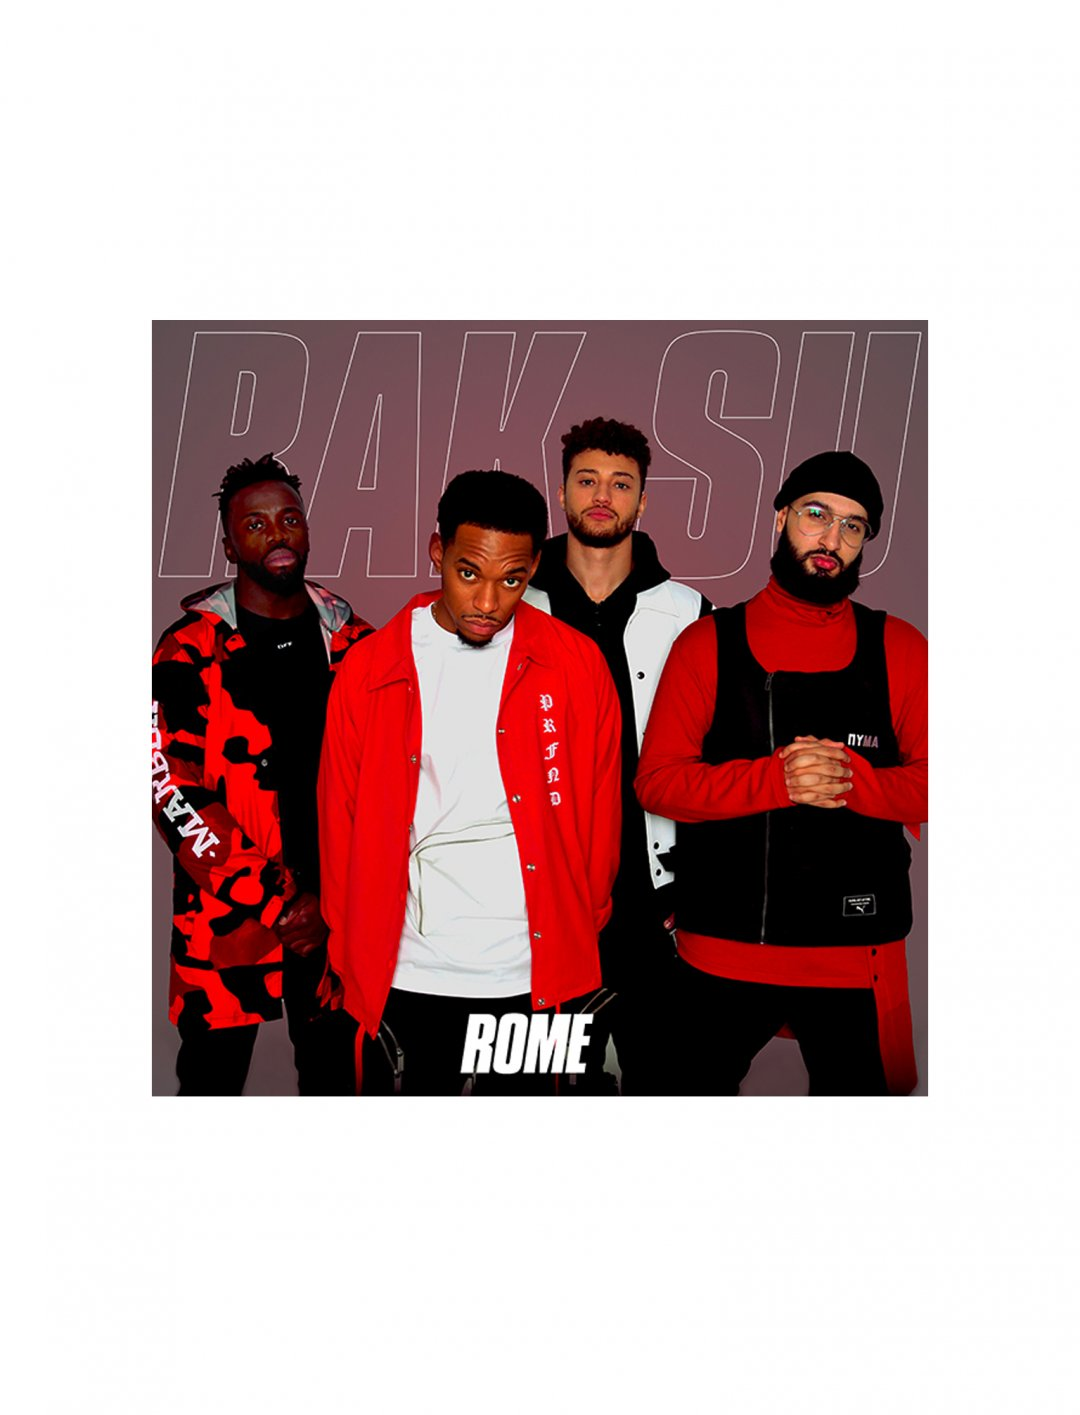 Stick Around Single Music & Ringtone Rak-Su